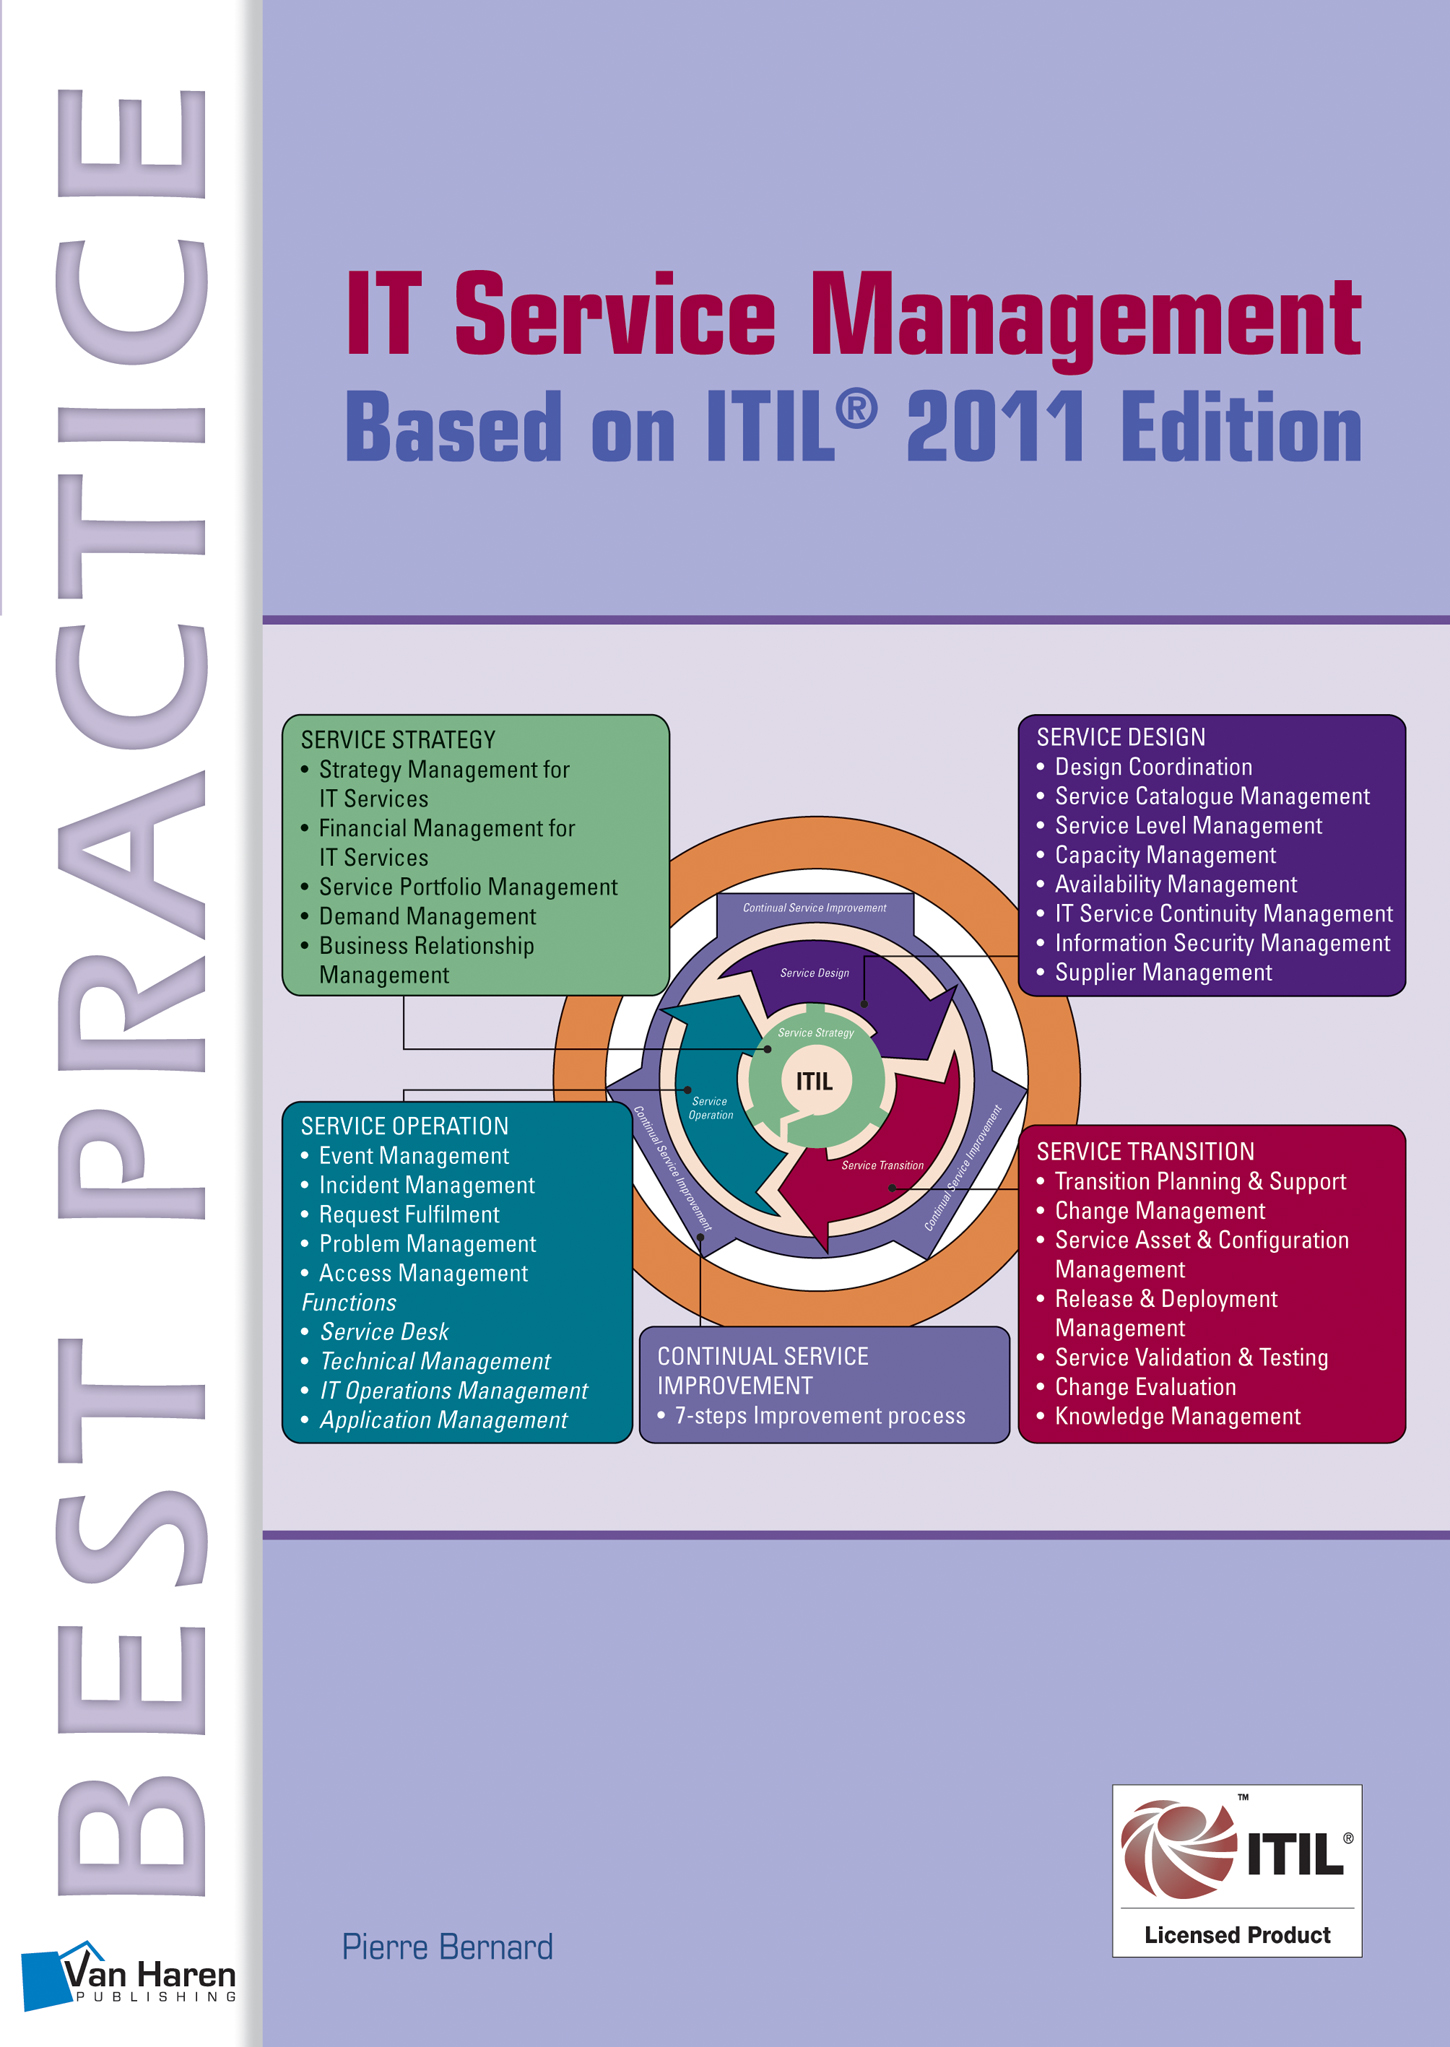 Service operation processes service strategy service design service - Itil In 3 Minutes Blog Van Haren Publishingblog Van Haren Publishing